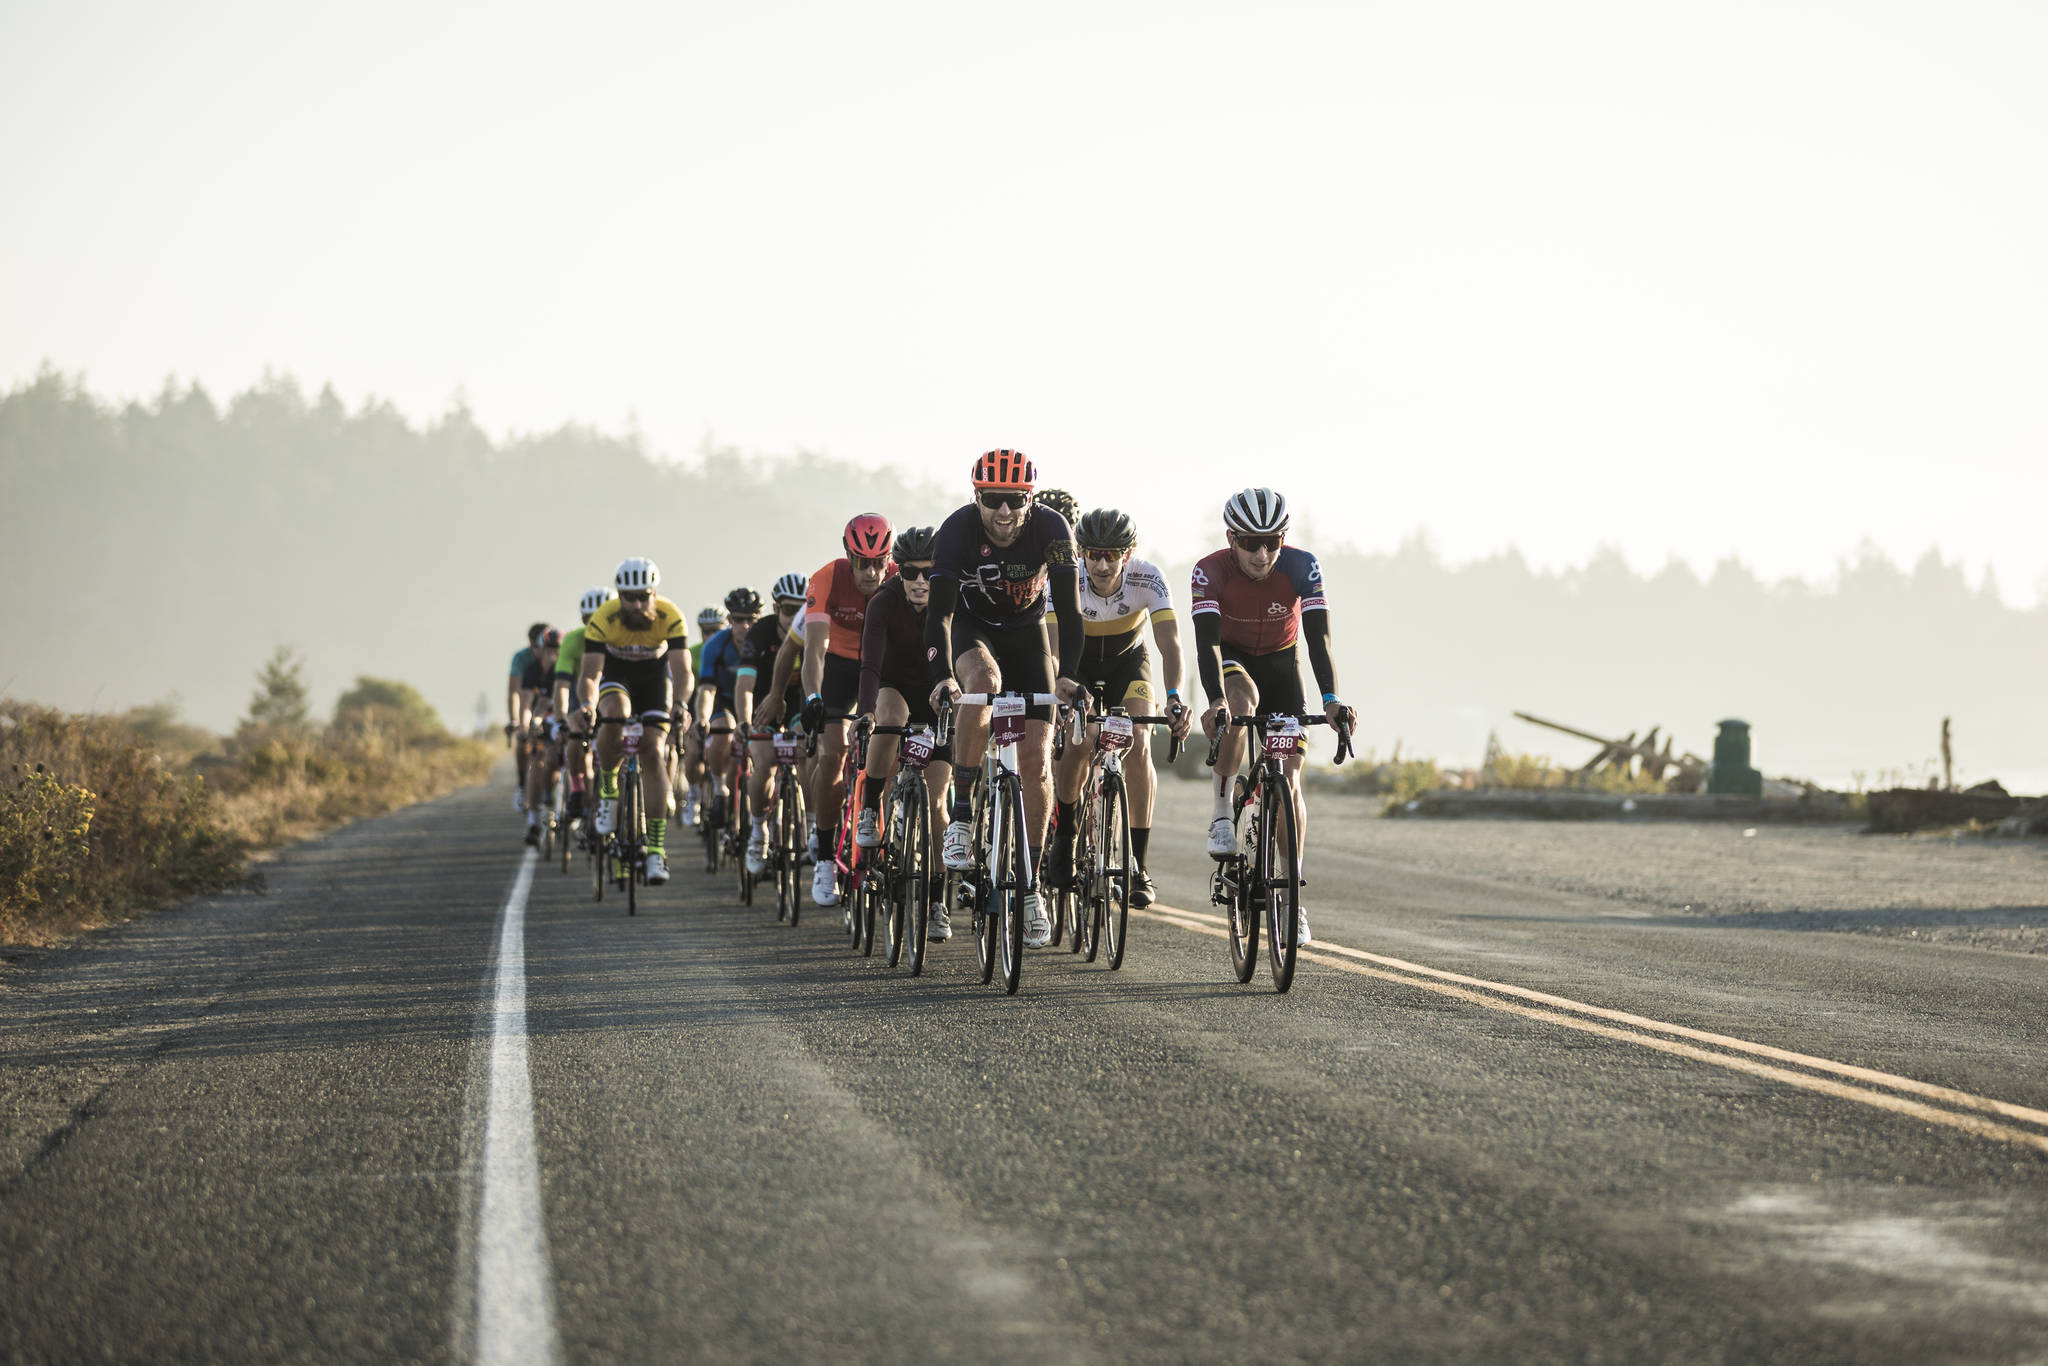 Cyclists take part in a previous edition of Ryder Hesjedal's Tour de Victoria. The event, cancelled in 2020 due to COVID-related public health regulations, has moved from August to October for this year. (Photo contributed)